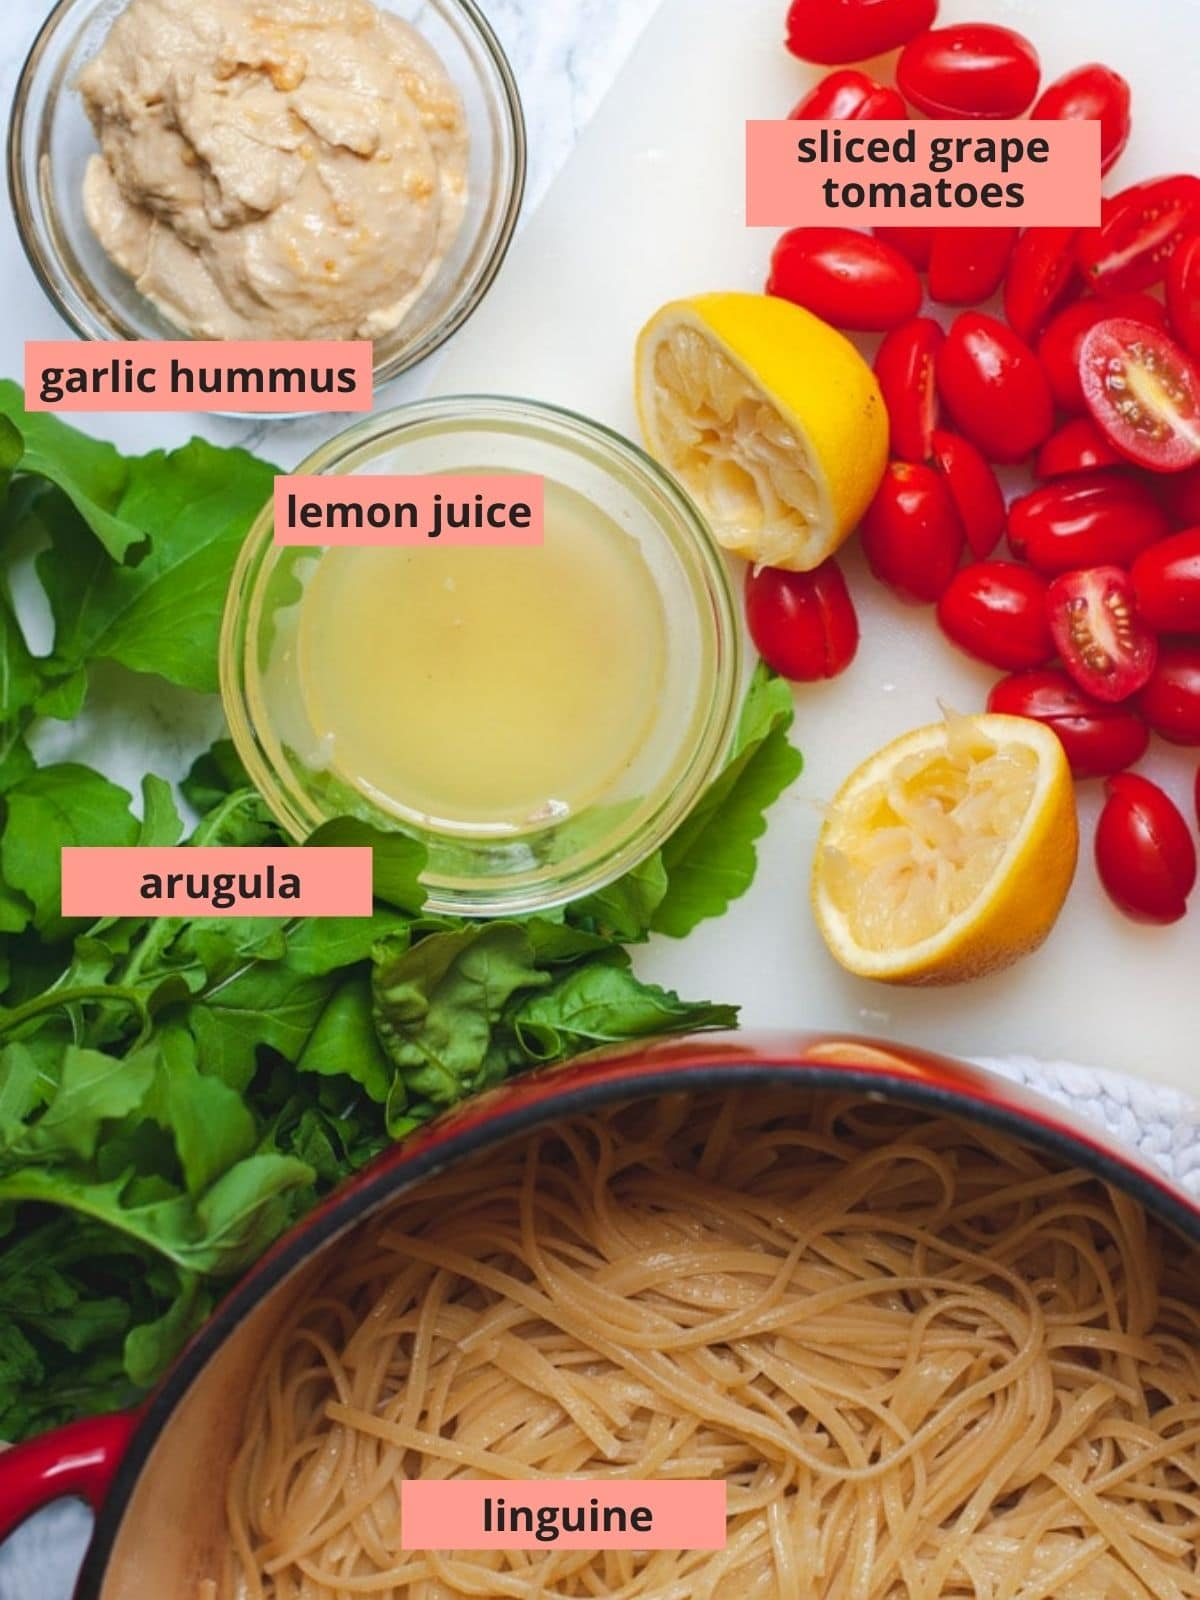 Labeled ingredients used to make hummus pasta